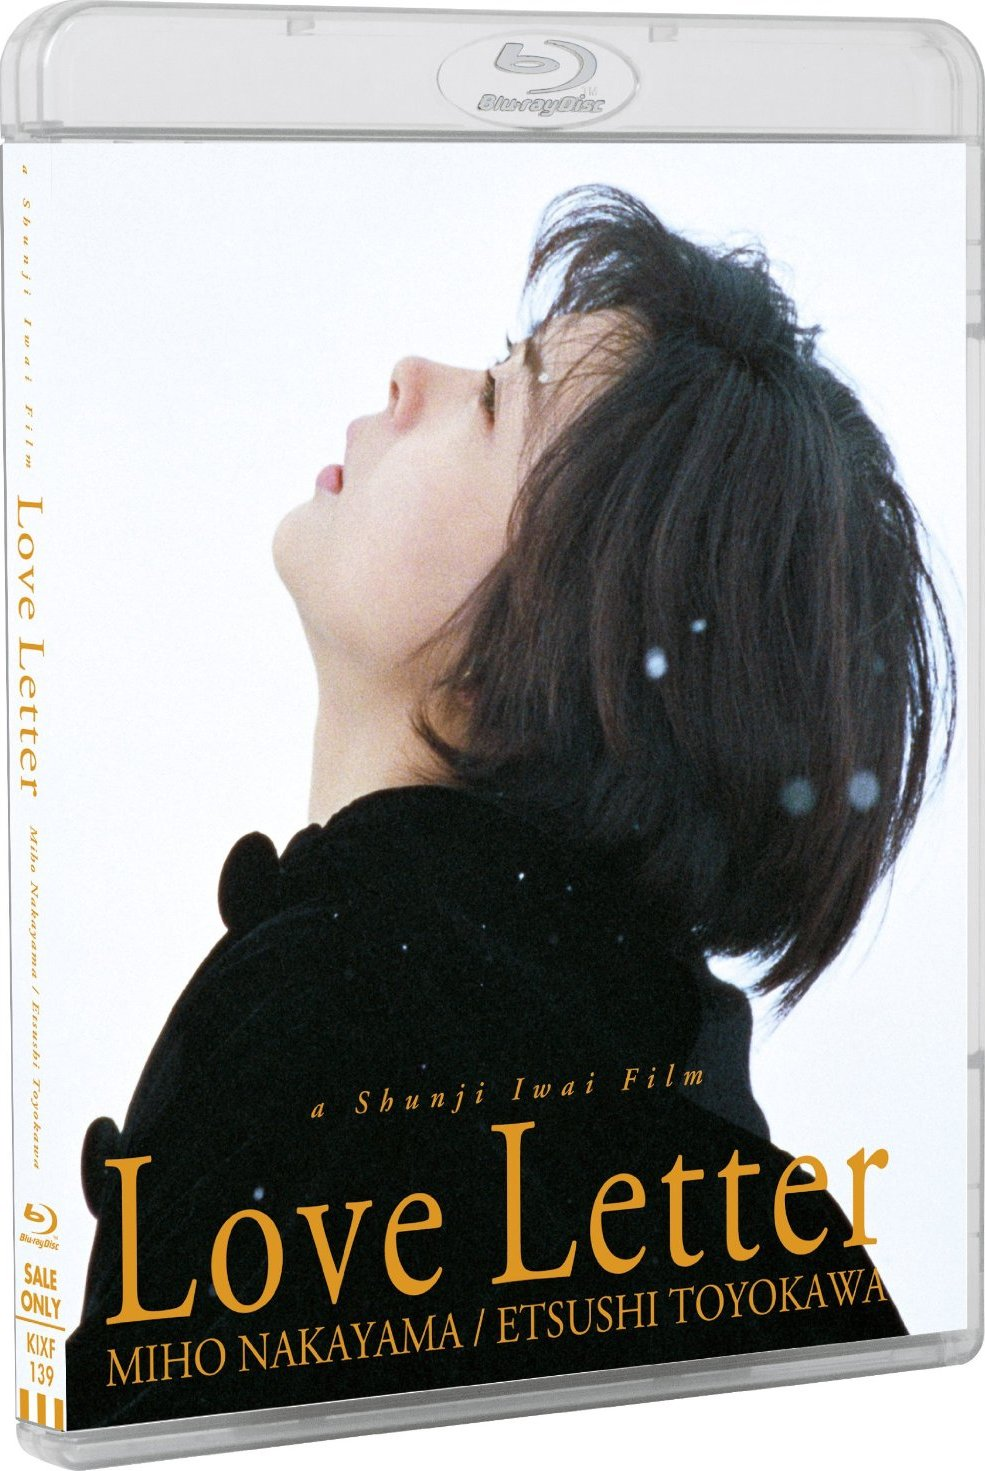 love letter movie letter 1995 720p bluray x264 dts wiki high 23479 | 66419 front